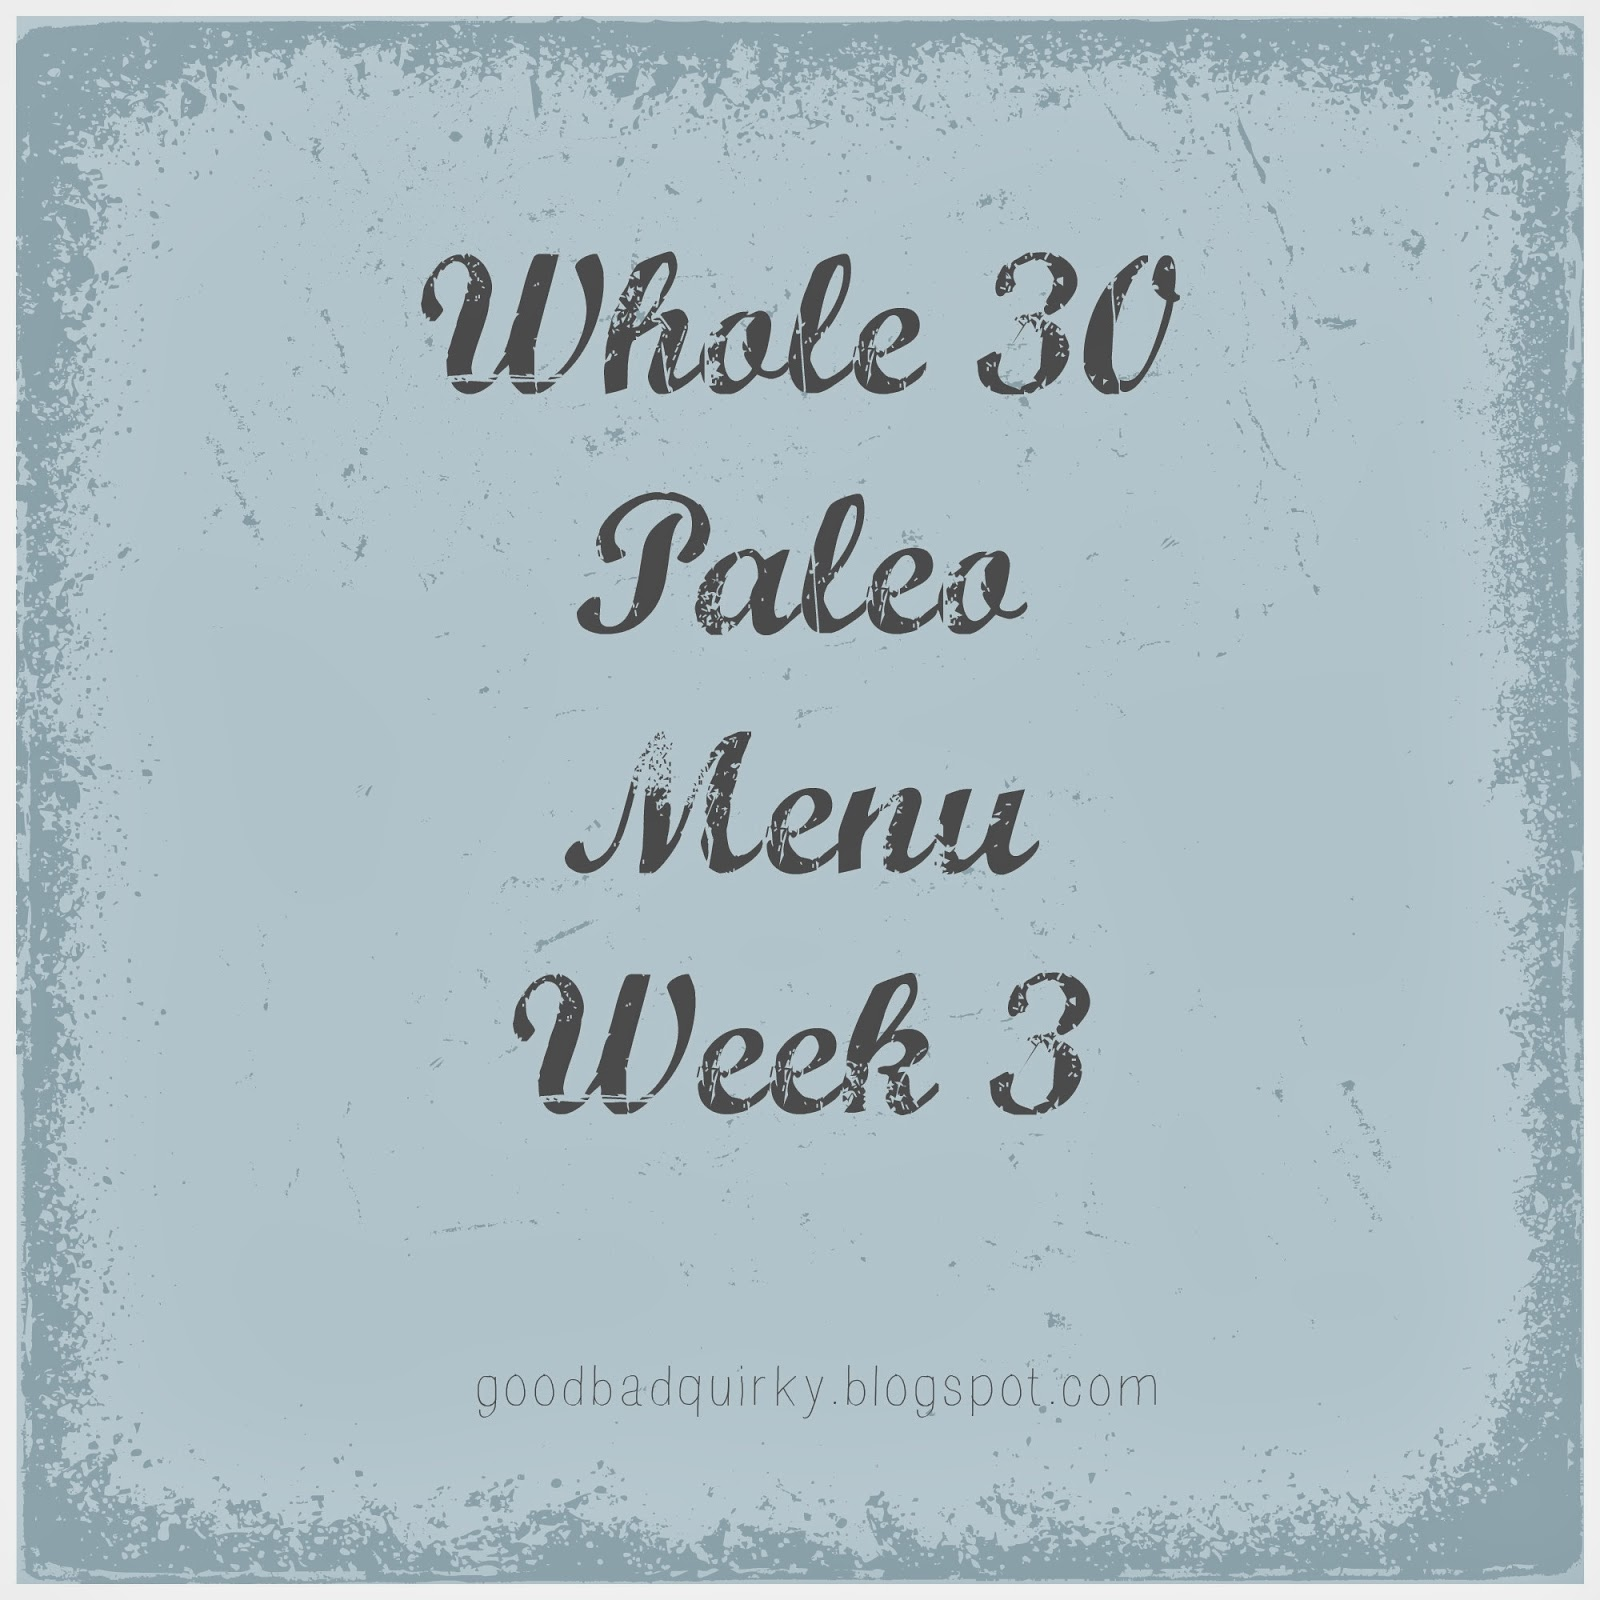 Whole 30 Paleo Menu